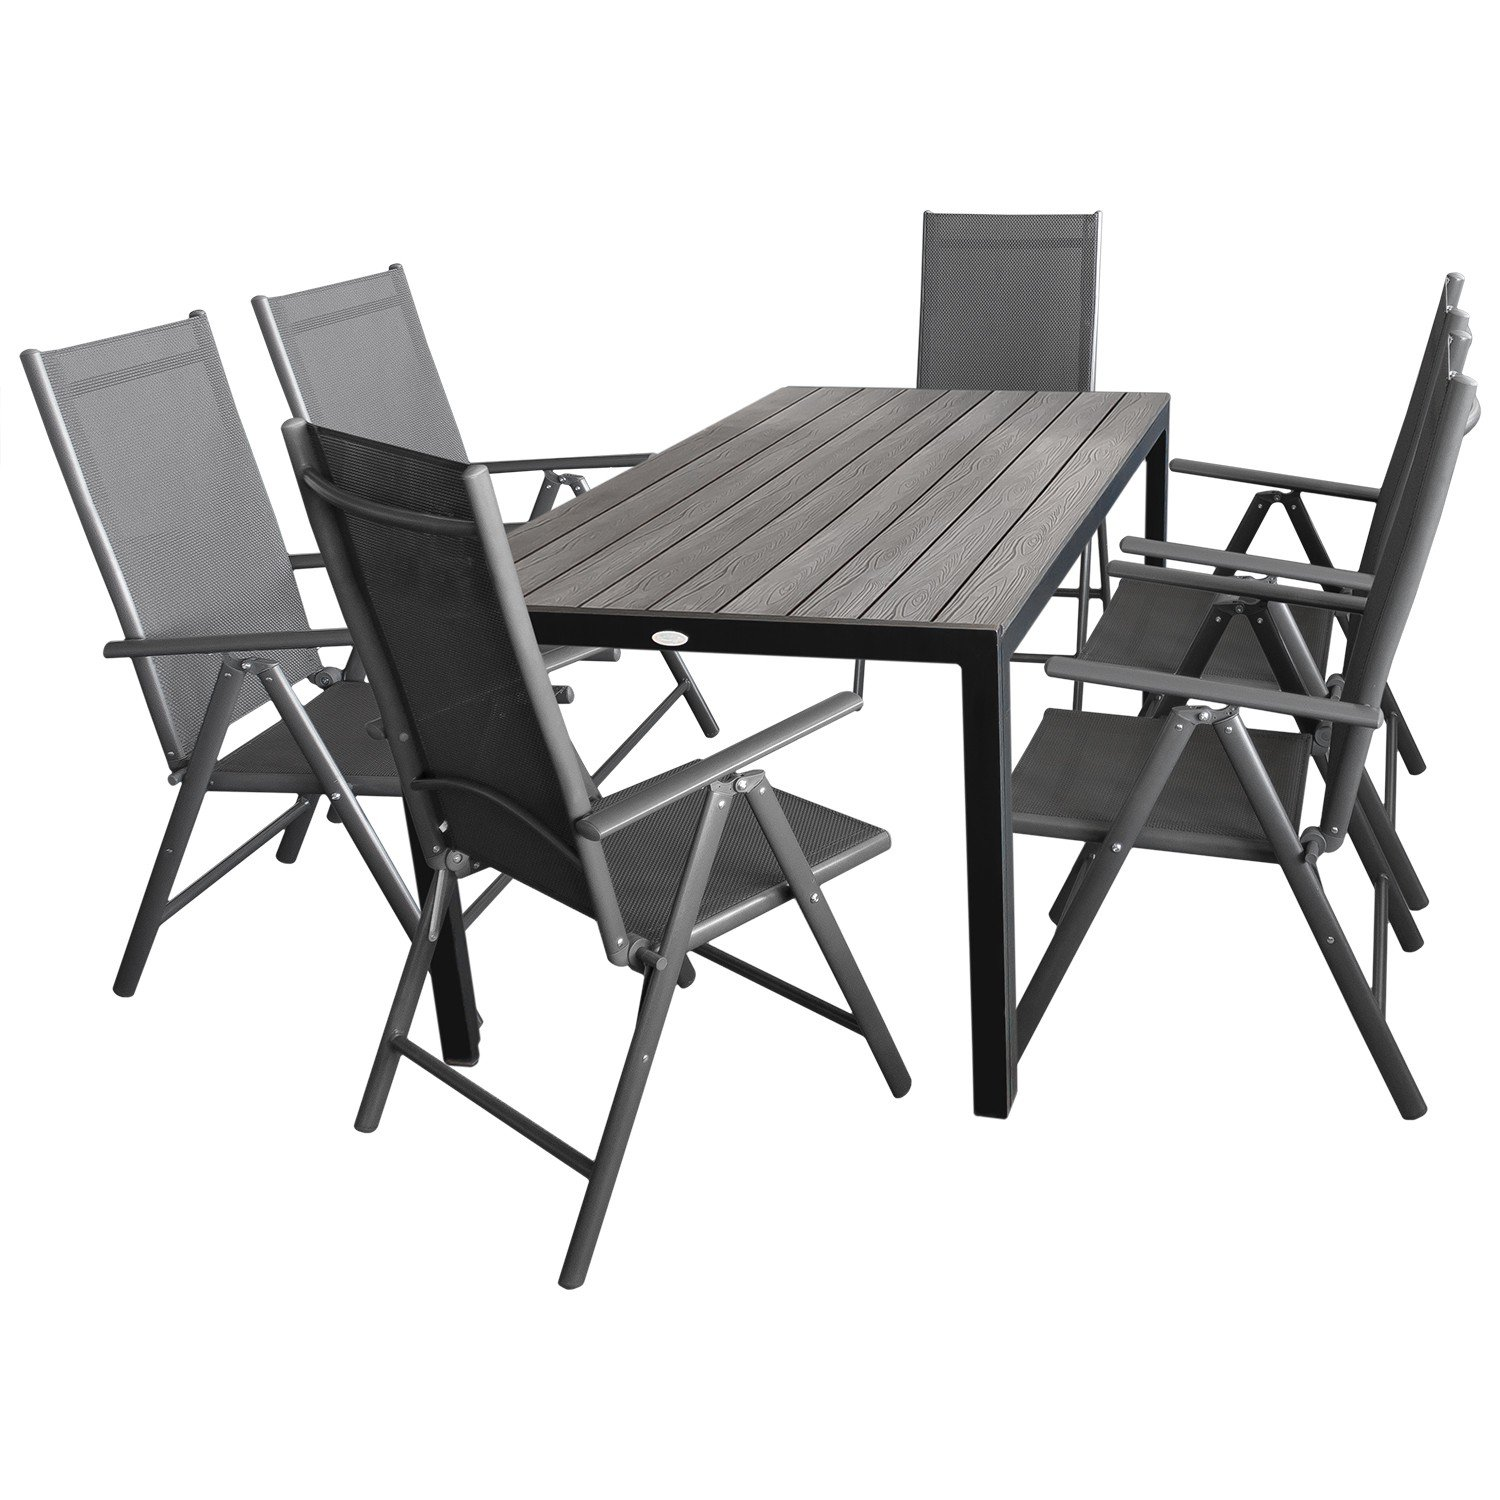 7tlg gartengarnitur gartenm bel terrassenm bel set sitzgruppe sitzgarnitur aluminium polywood. Black Bedroom Furniture Sets. Home Design Ideas